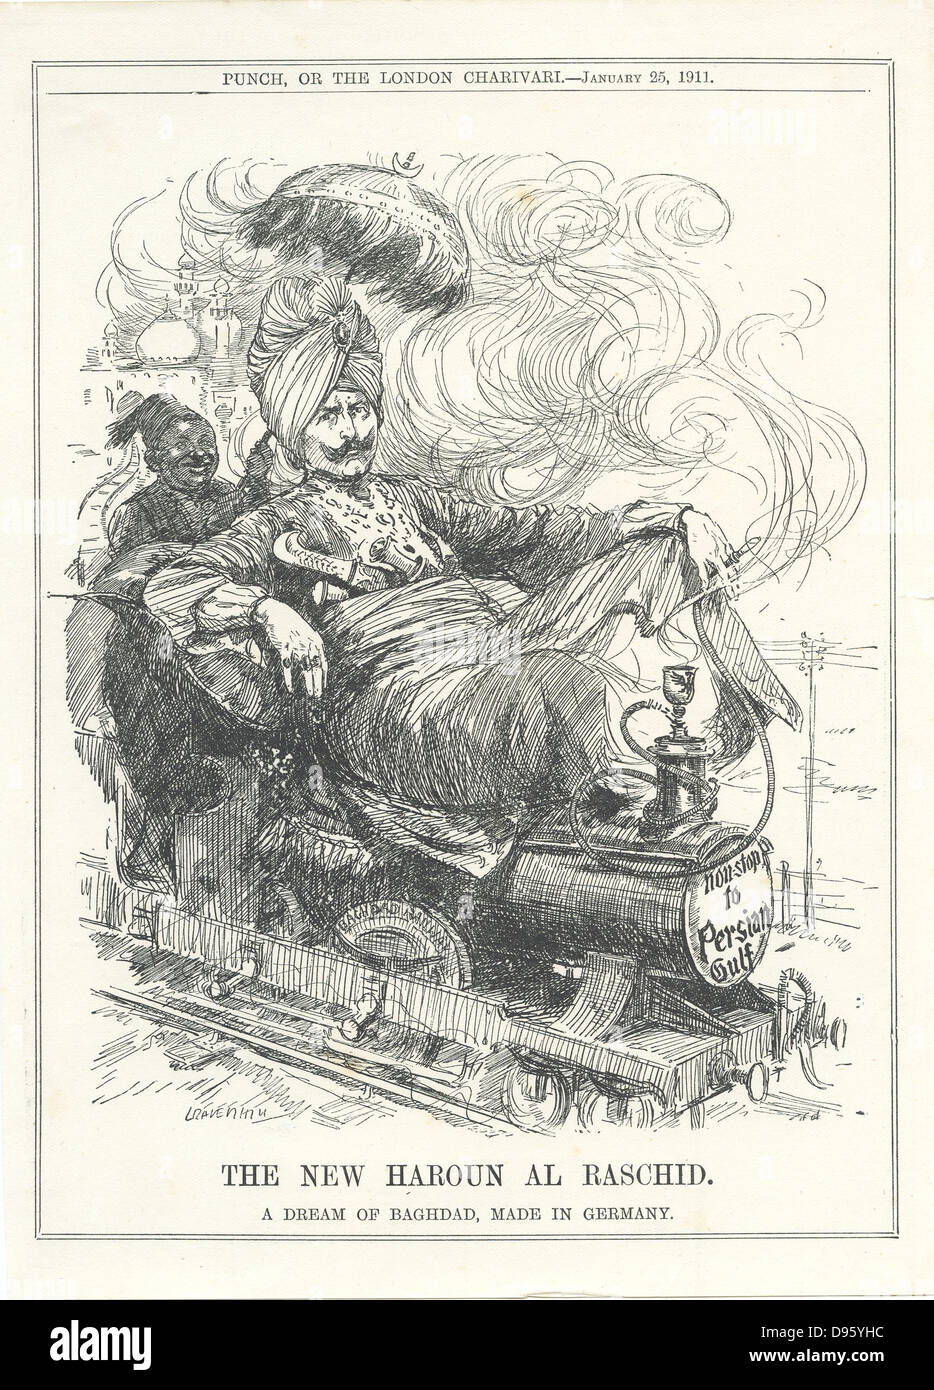 Wilhelm II, Emperor of Germany, dreaming of a German rail link to Baghdad and oil. Cartoon by Leonard Raven-Hill Stock Photo